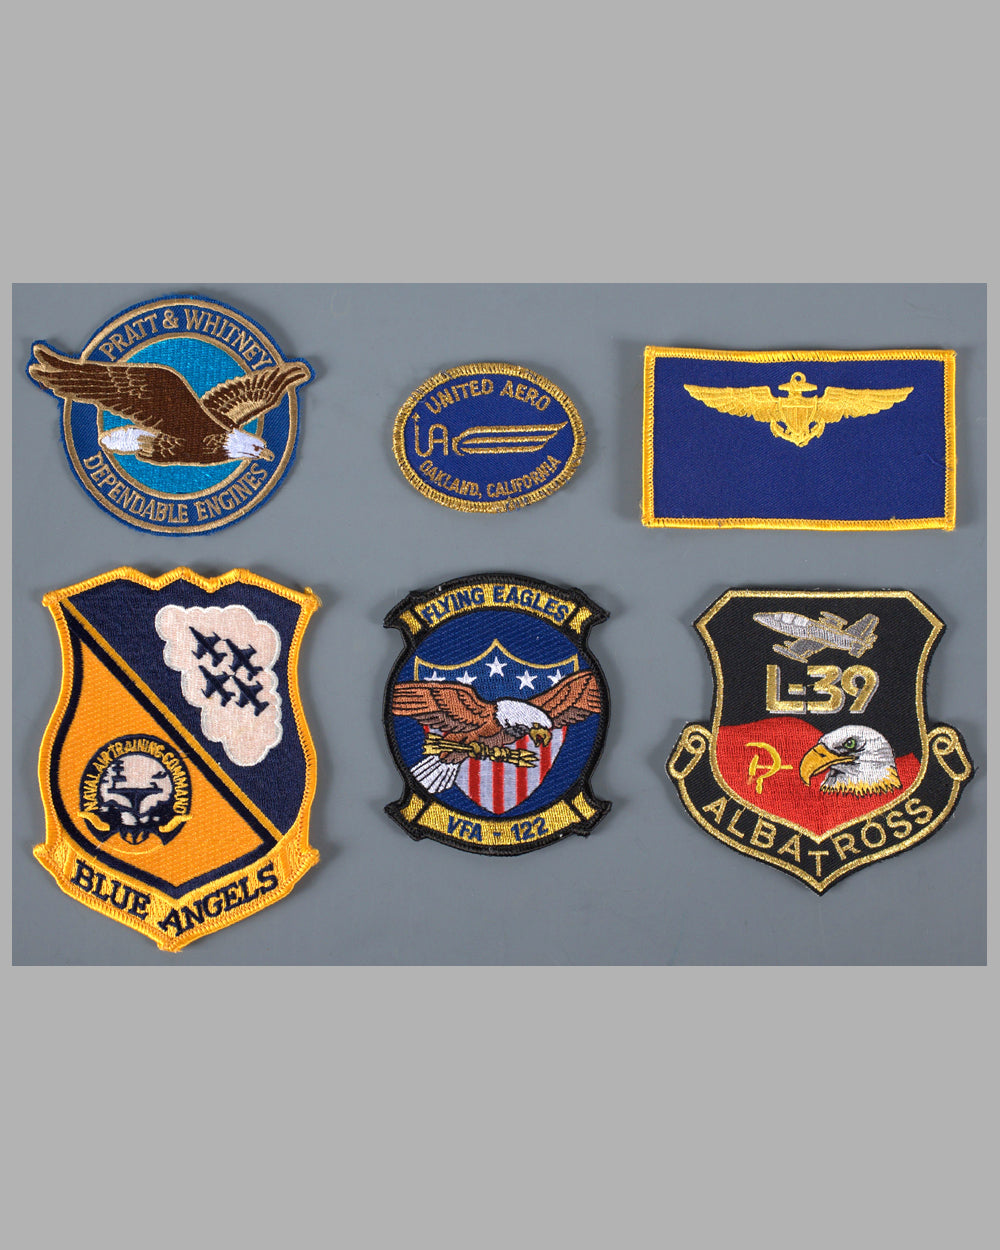 Six aviation patches